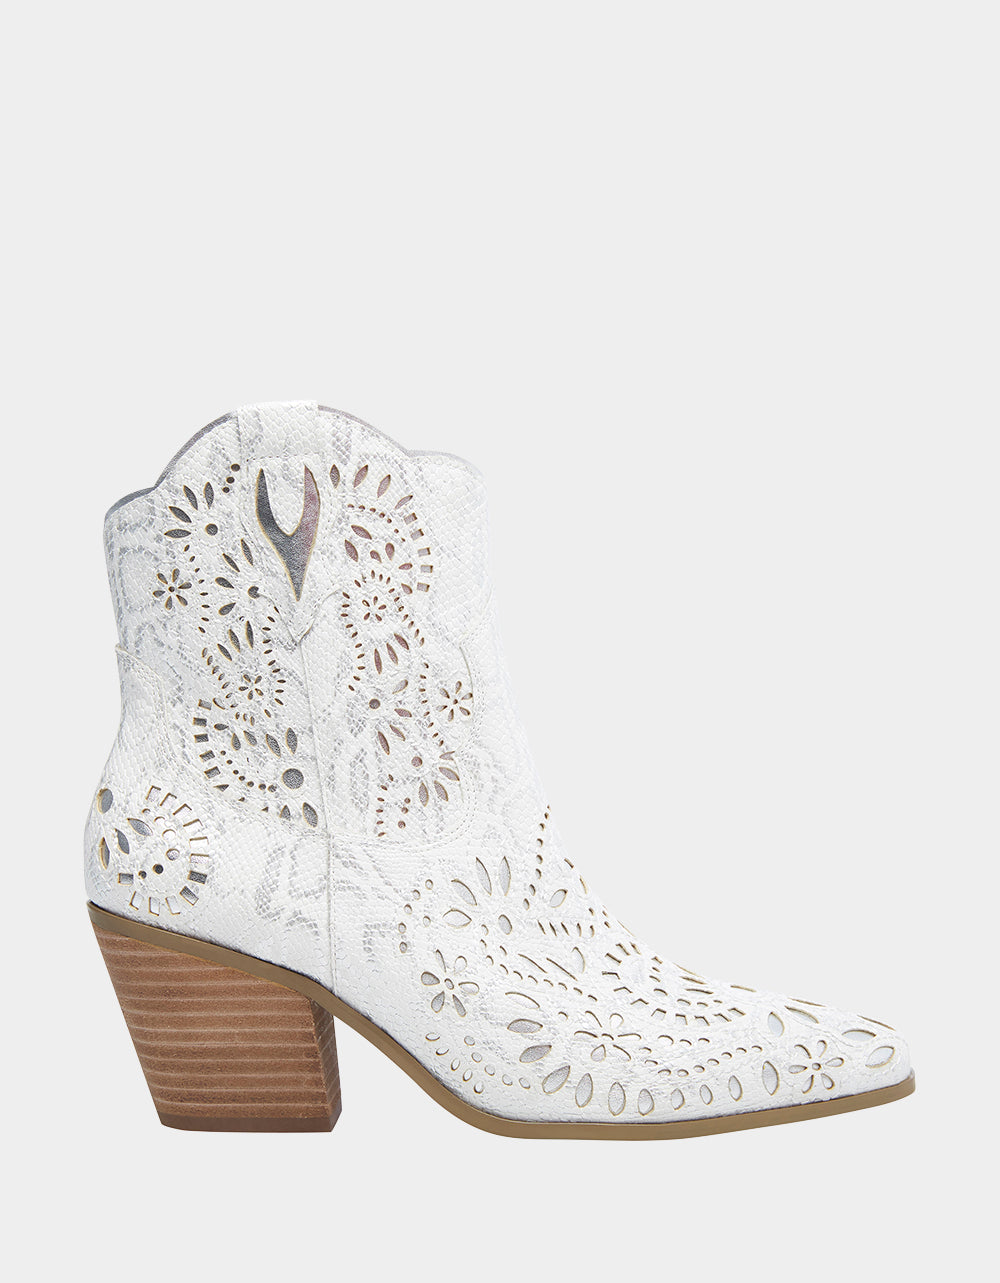 MOZART WHITE - SHOES - Betsey Johnson